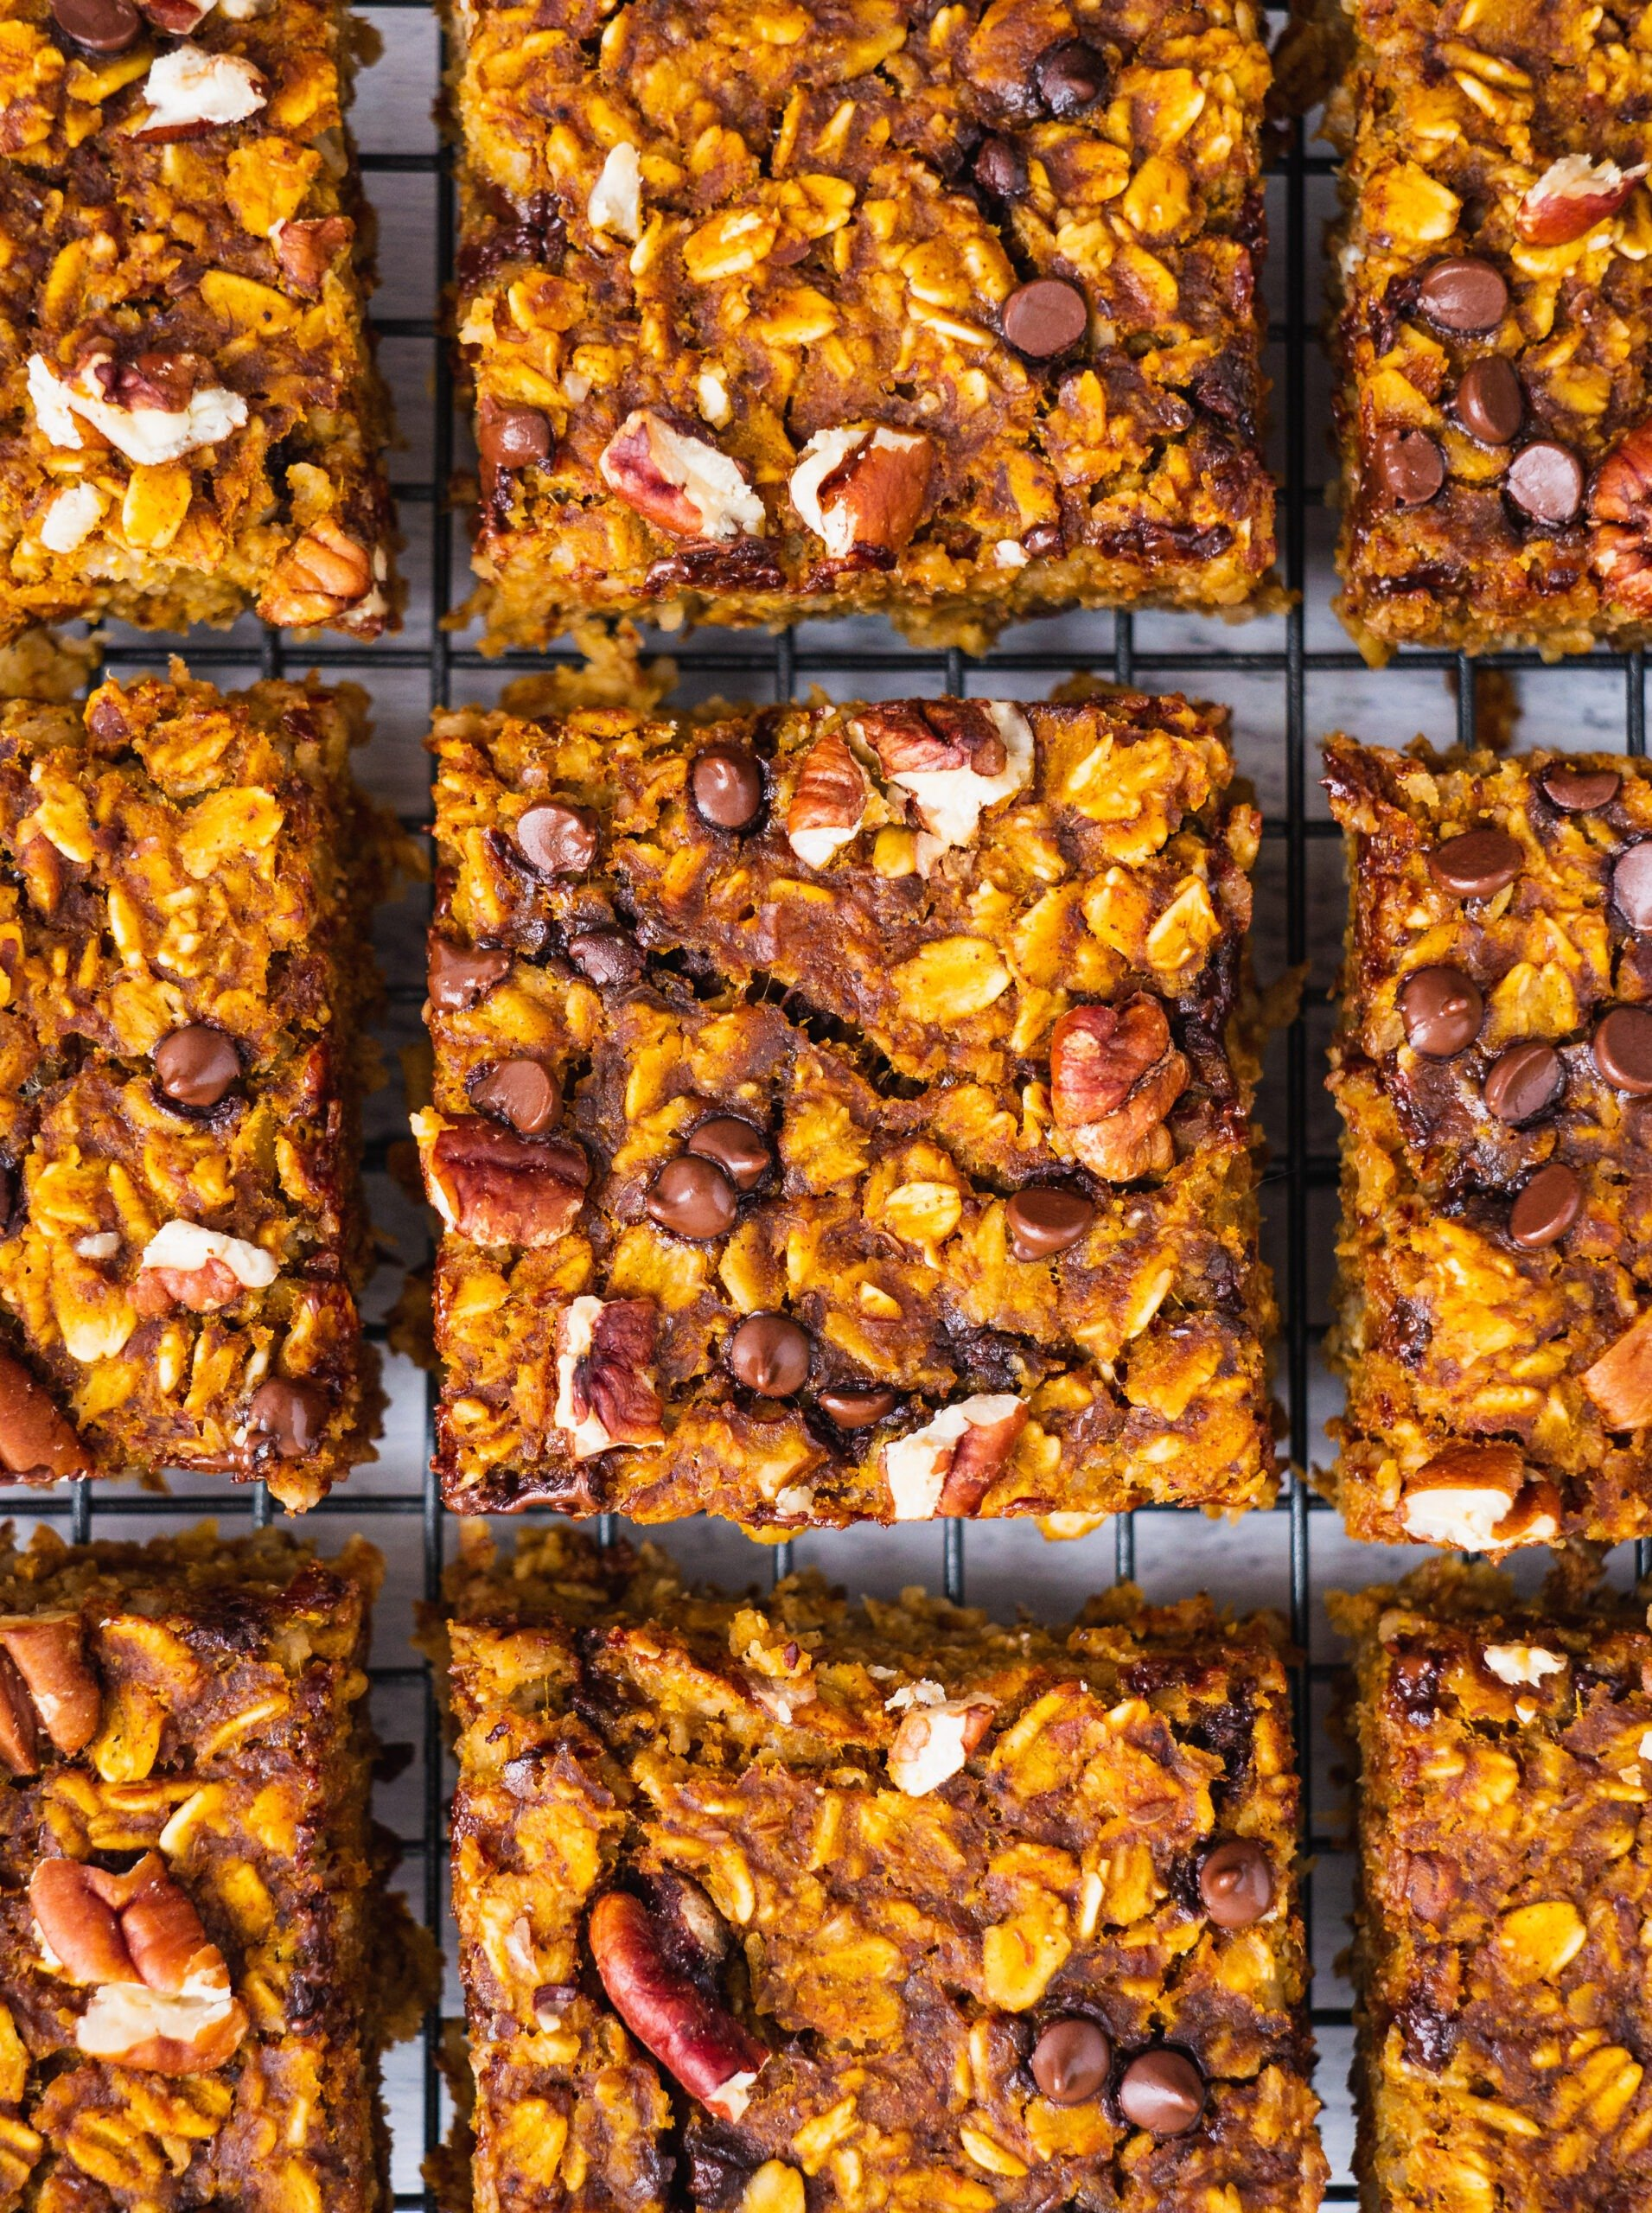 sliced up breakfast bars on a wire drying rack cooling.there are nuts and chocolate chips on top